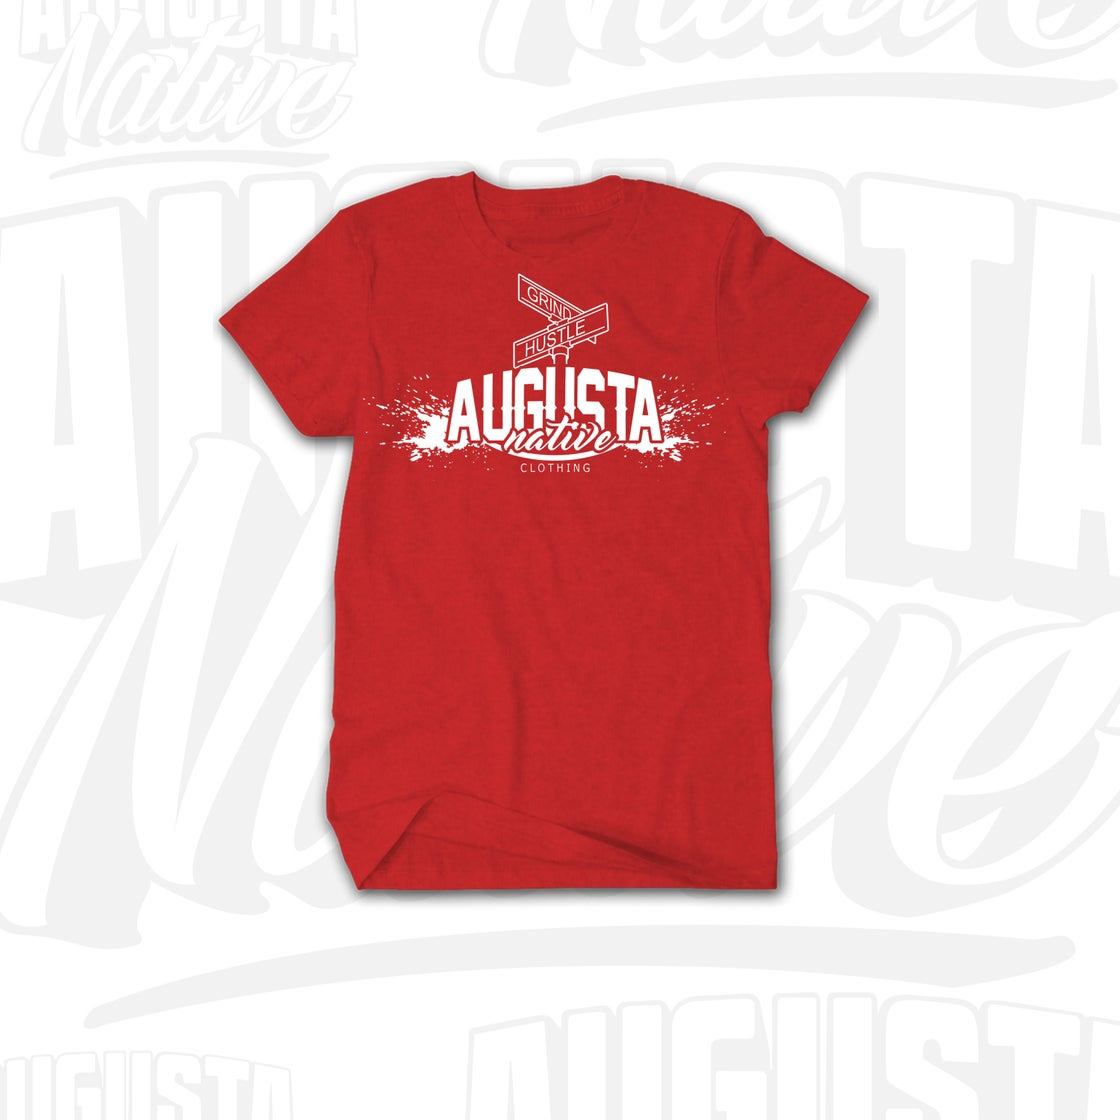 Image of Augusta Native Grind/Hustle - Red/White